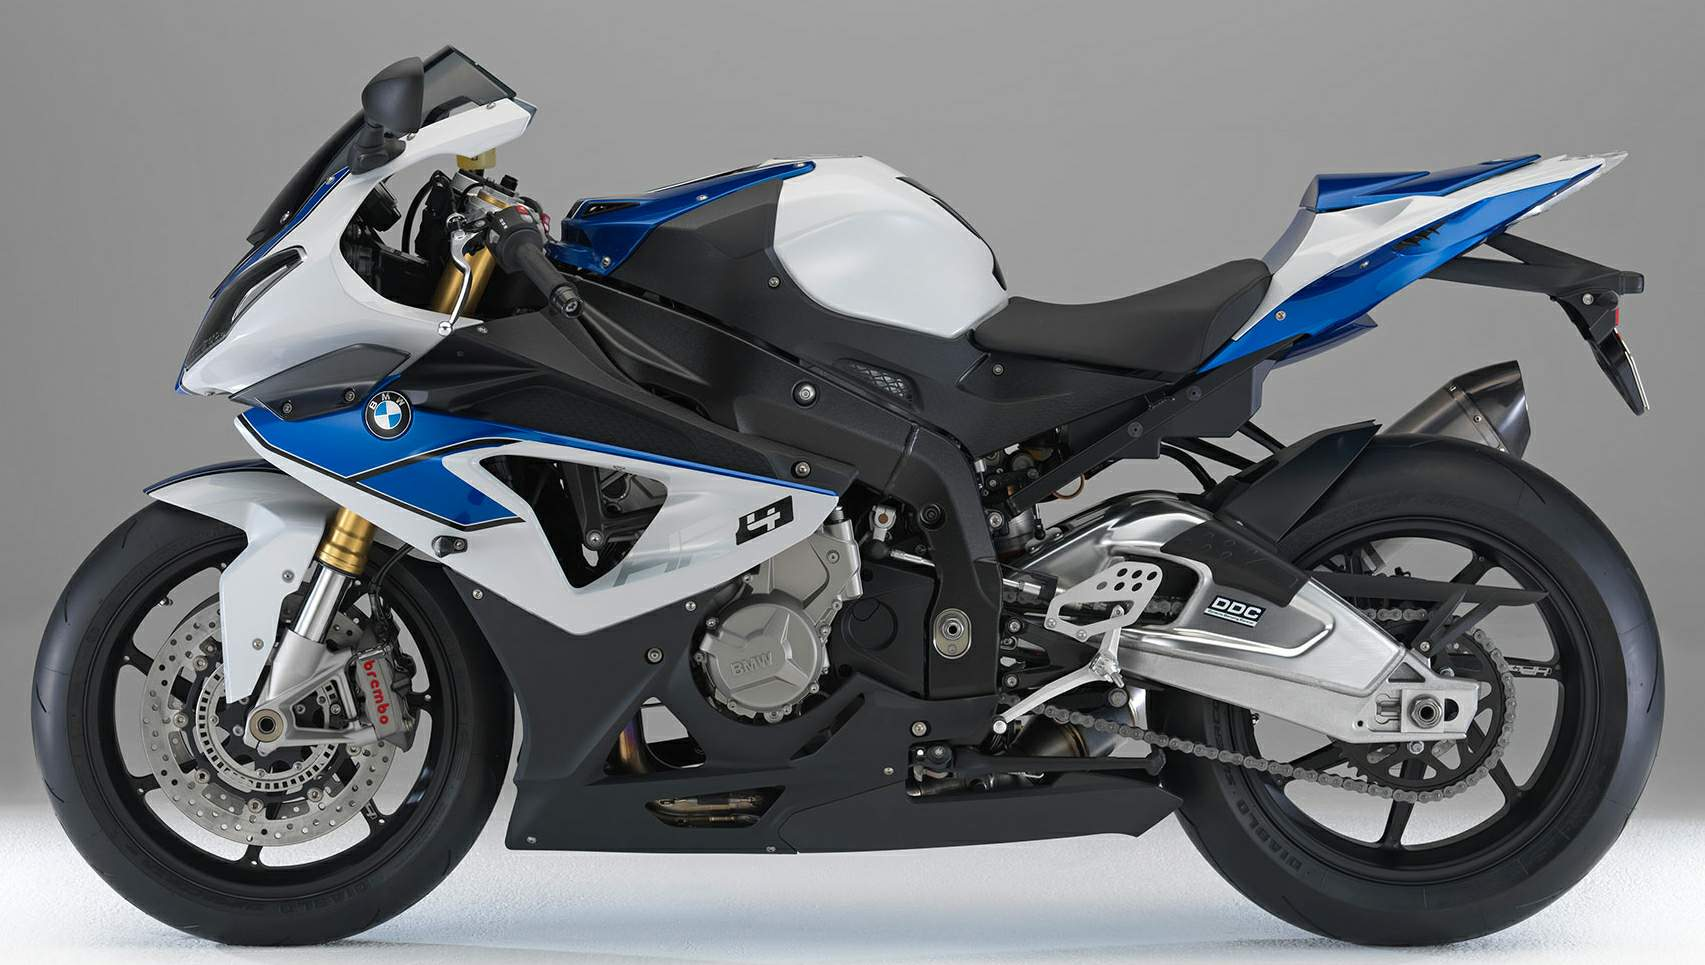 BMW HP 4 For Sale Specifications, Price and Images